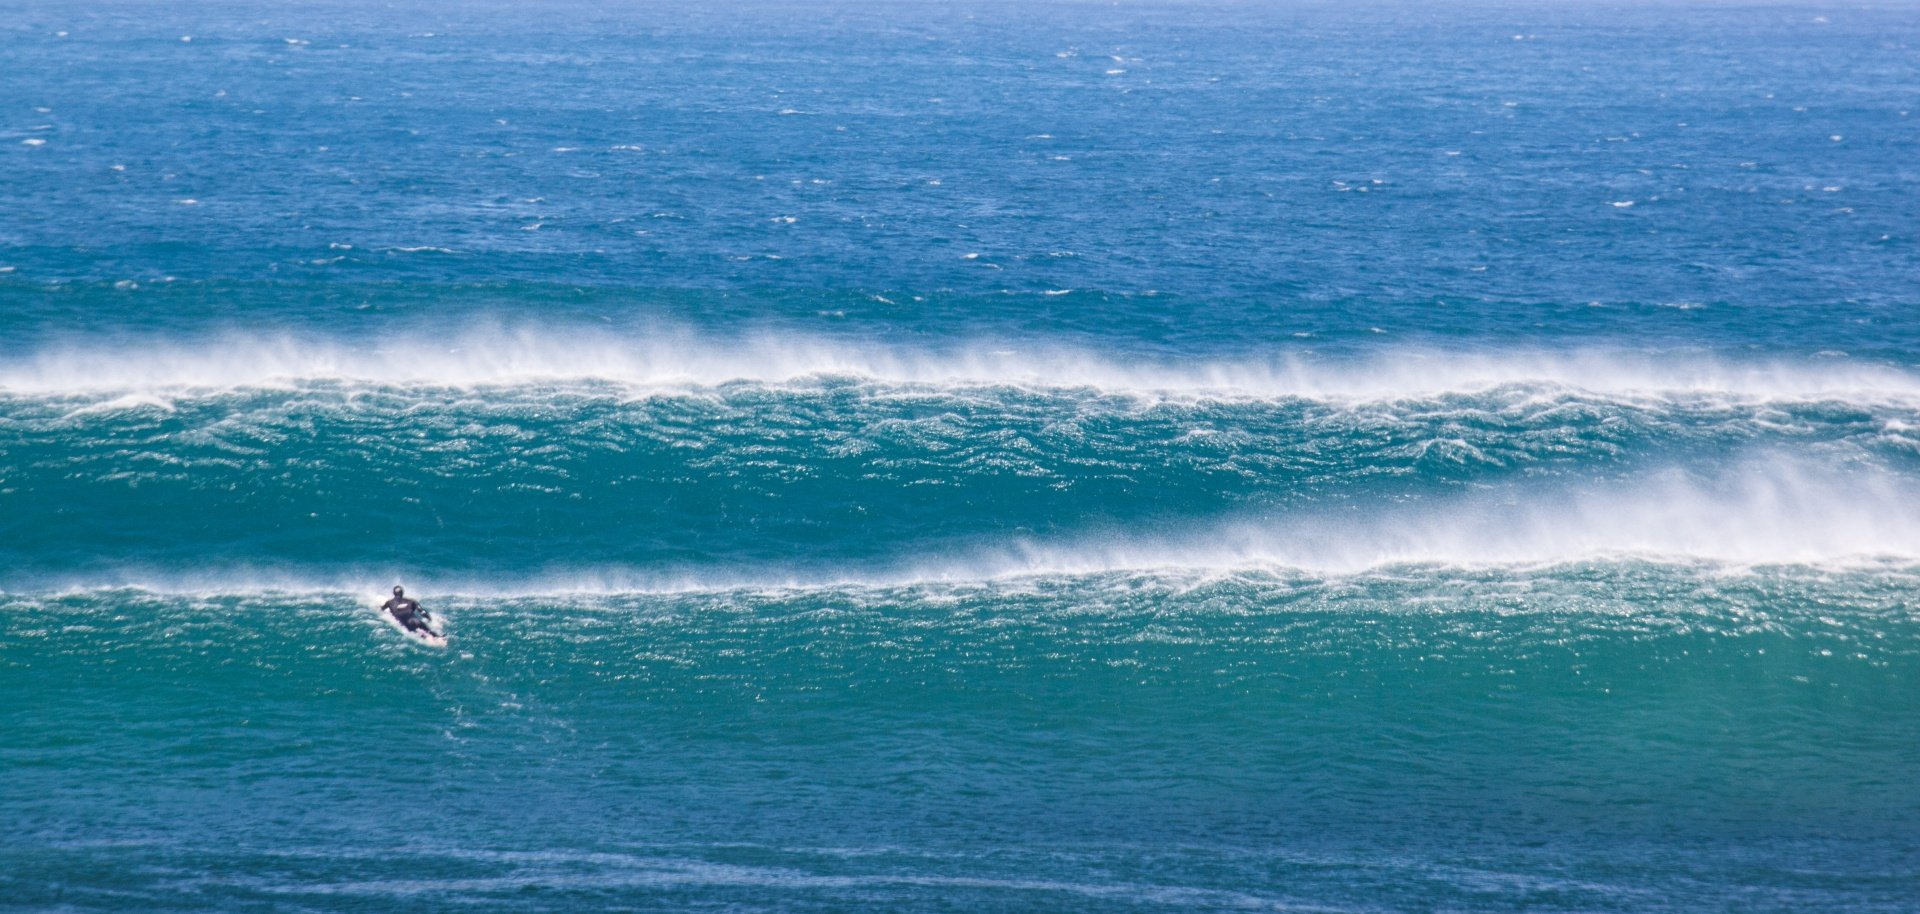 Michal Pelka's photo of Margaret River